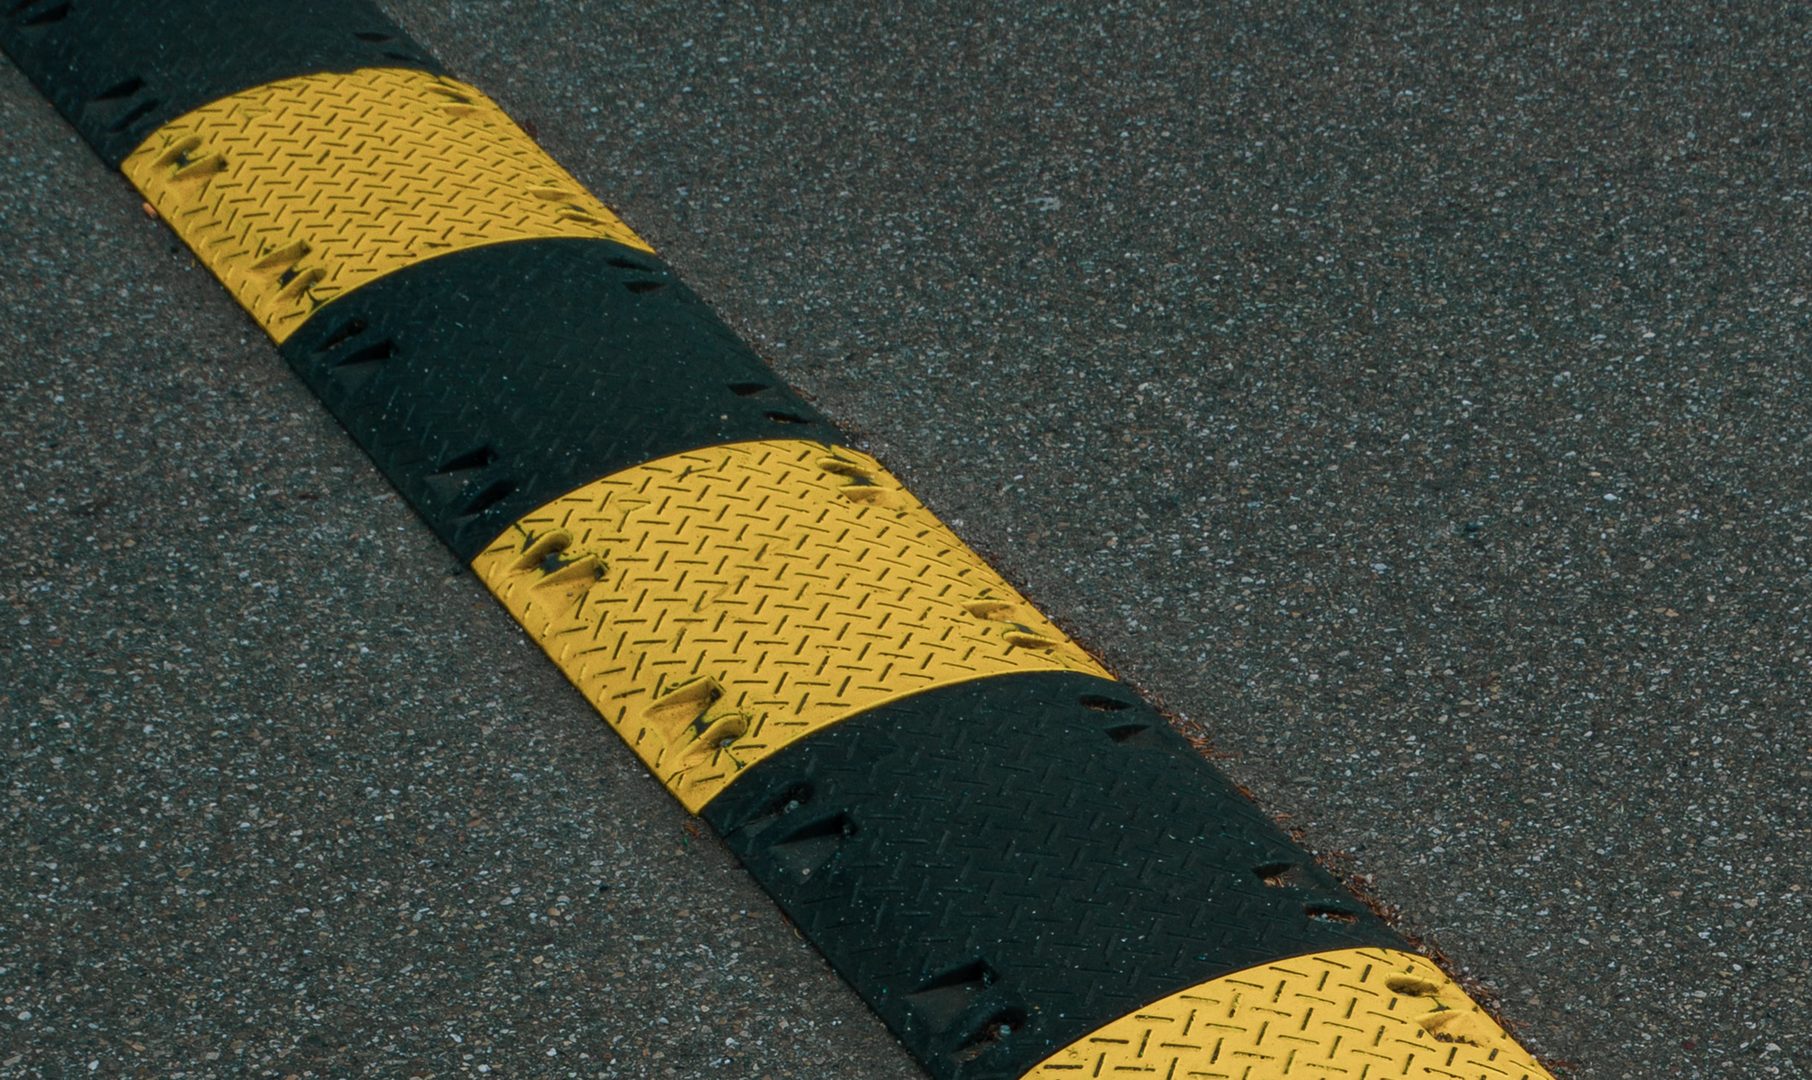 A yellow and black striped speed bump on asphalt